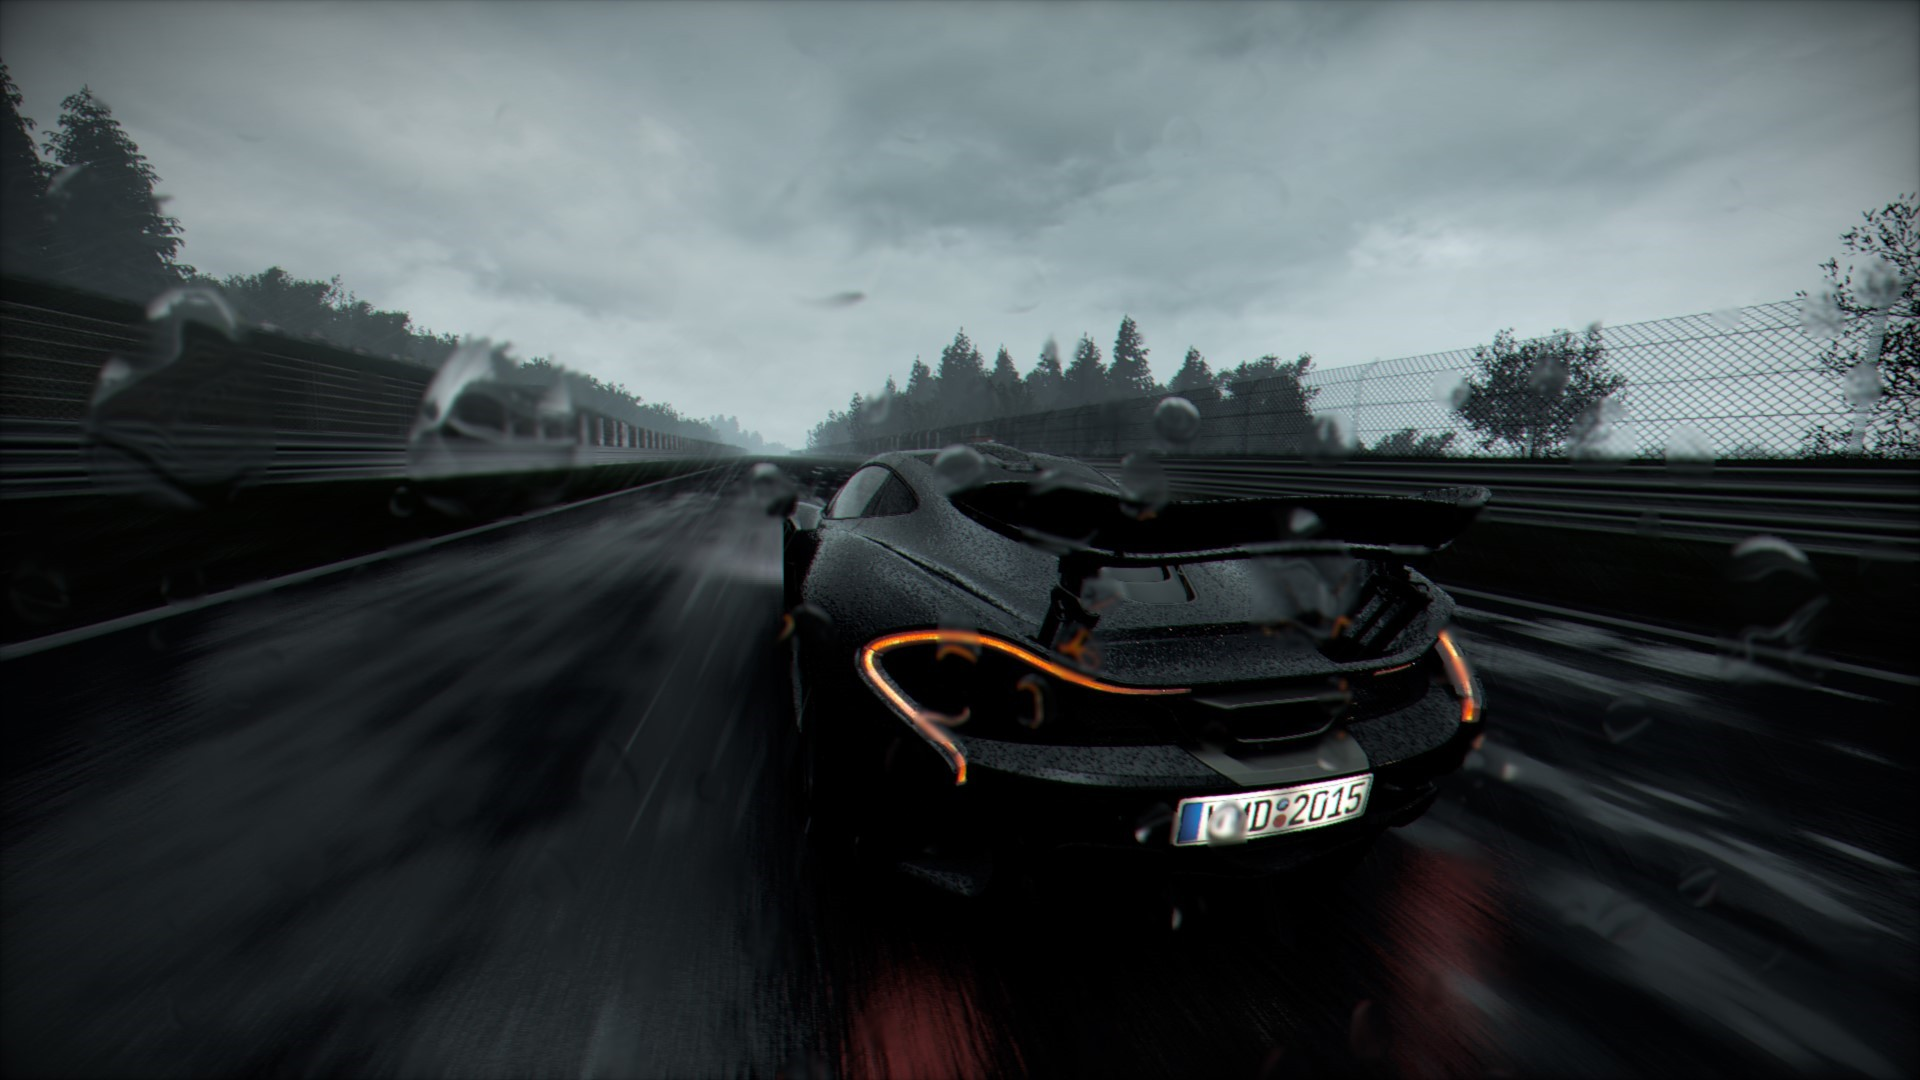 Driveclub Video Game 1280x1024 Resolution